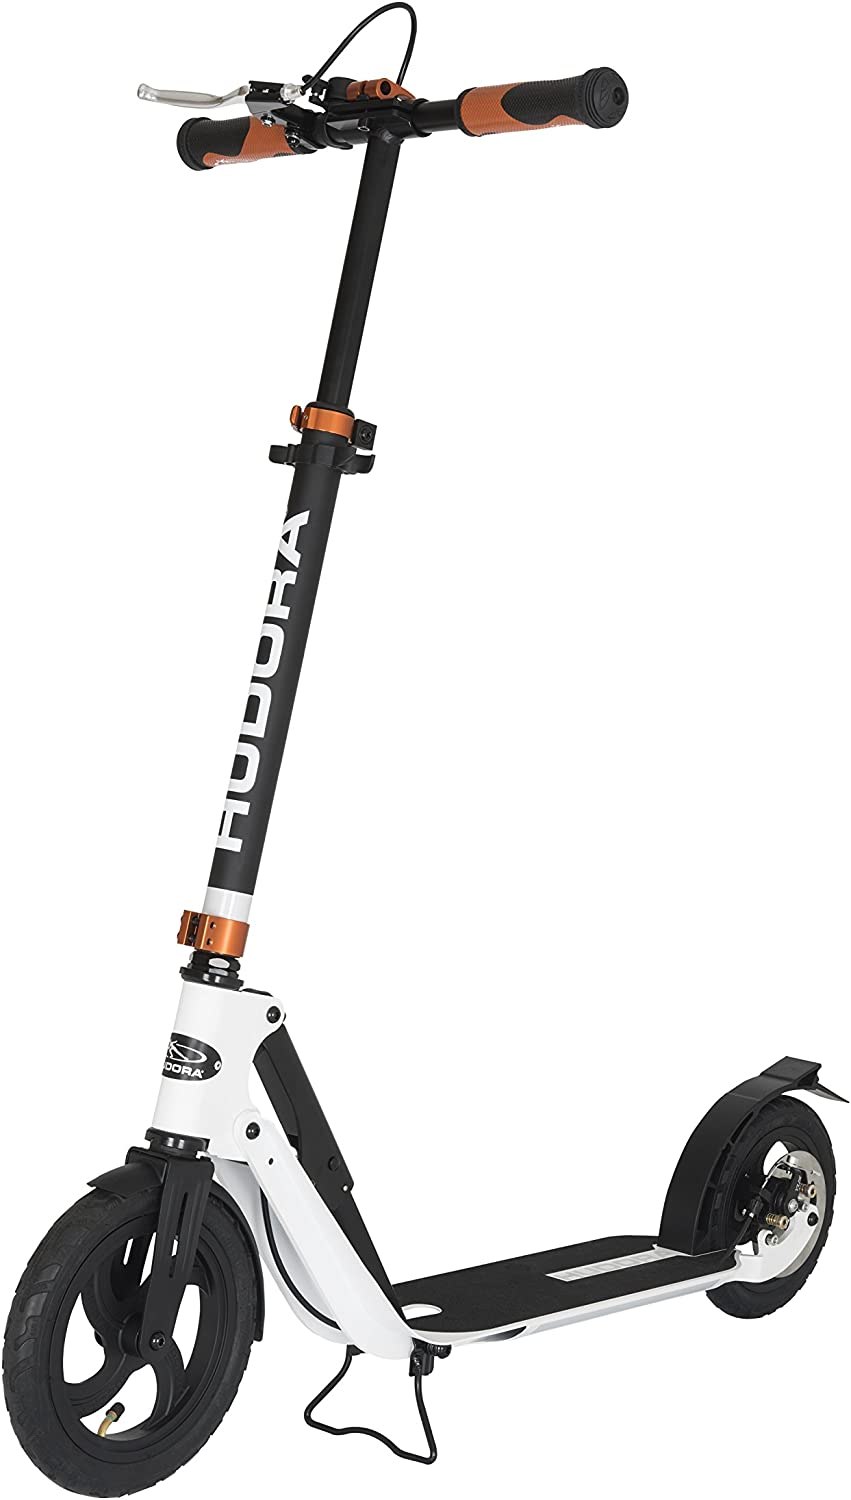 Hudora City Scooter Big Wheel Air Dual Brake Pneumatic Tyres Hand Brake Pedal Scooter Roller